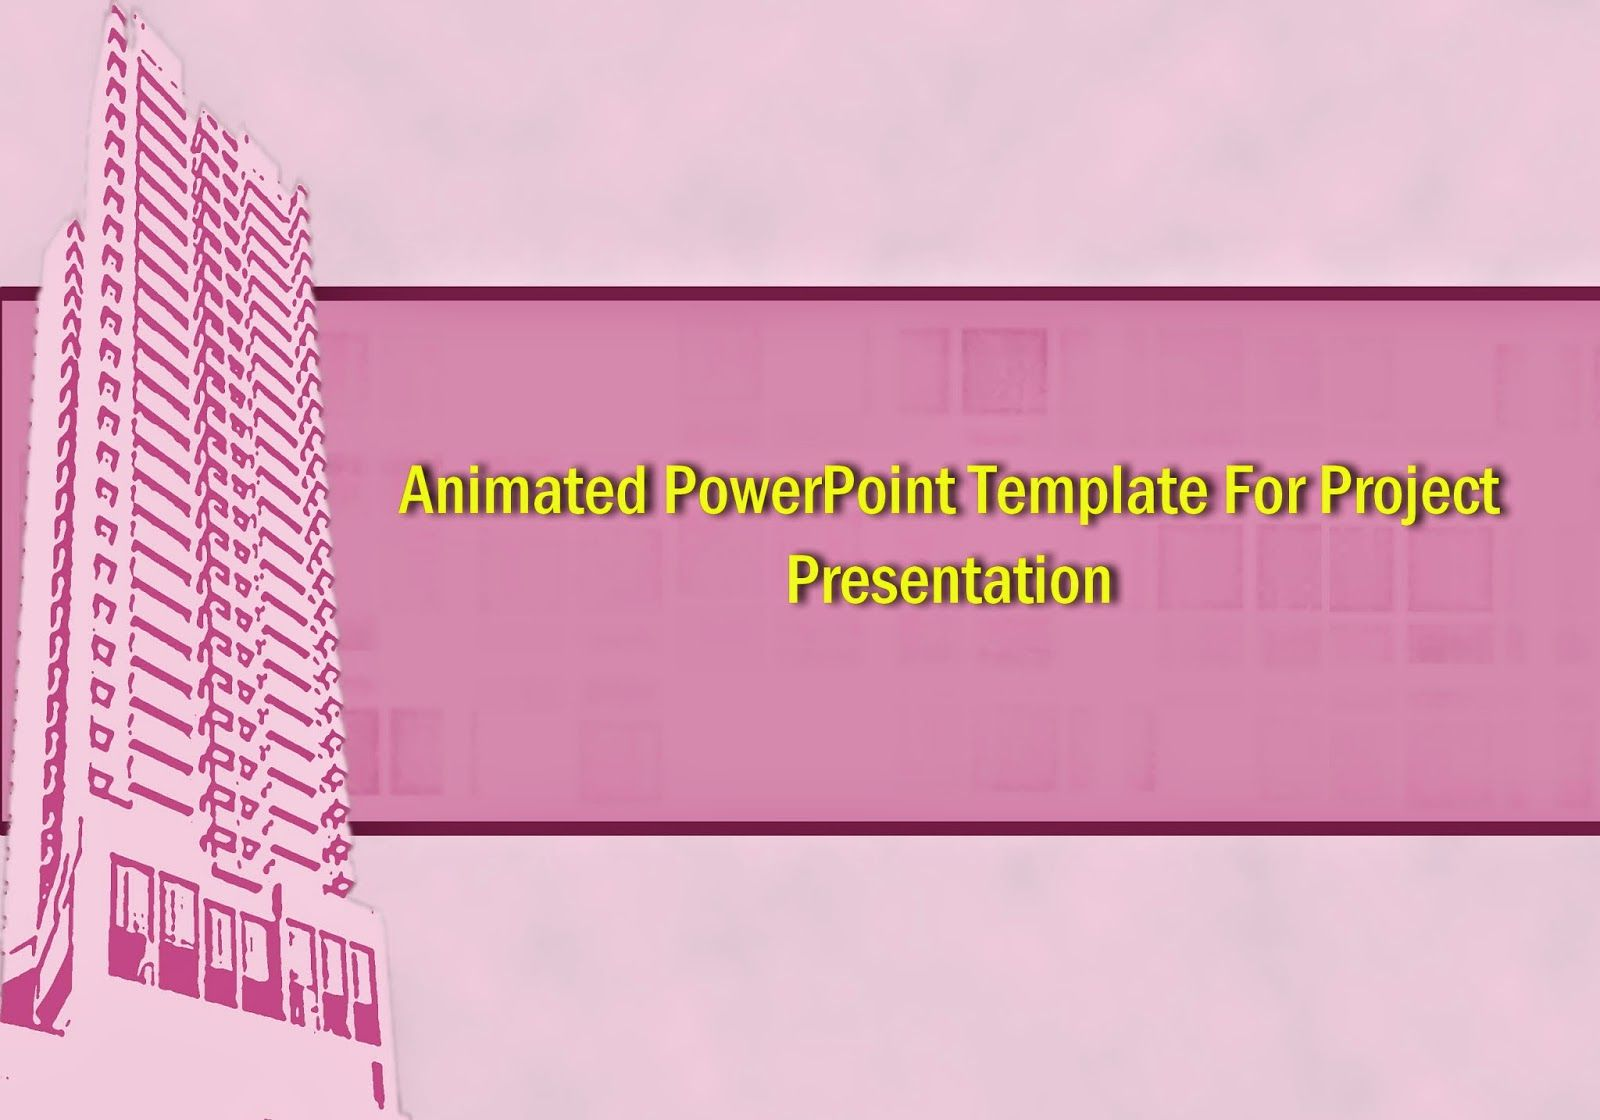 Professional animated powerpoint templates free download for project professional animated powerpoint templates free download for project presentation toneelgroepblik Image collections